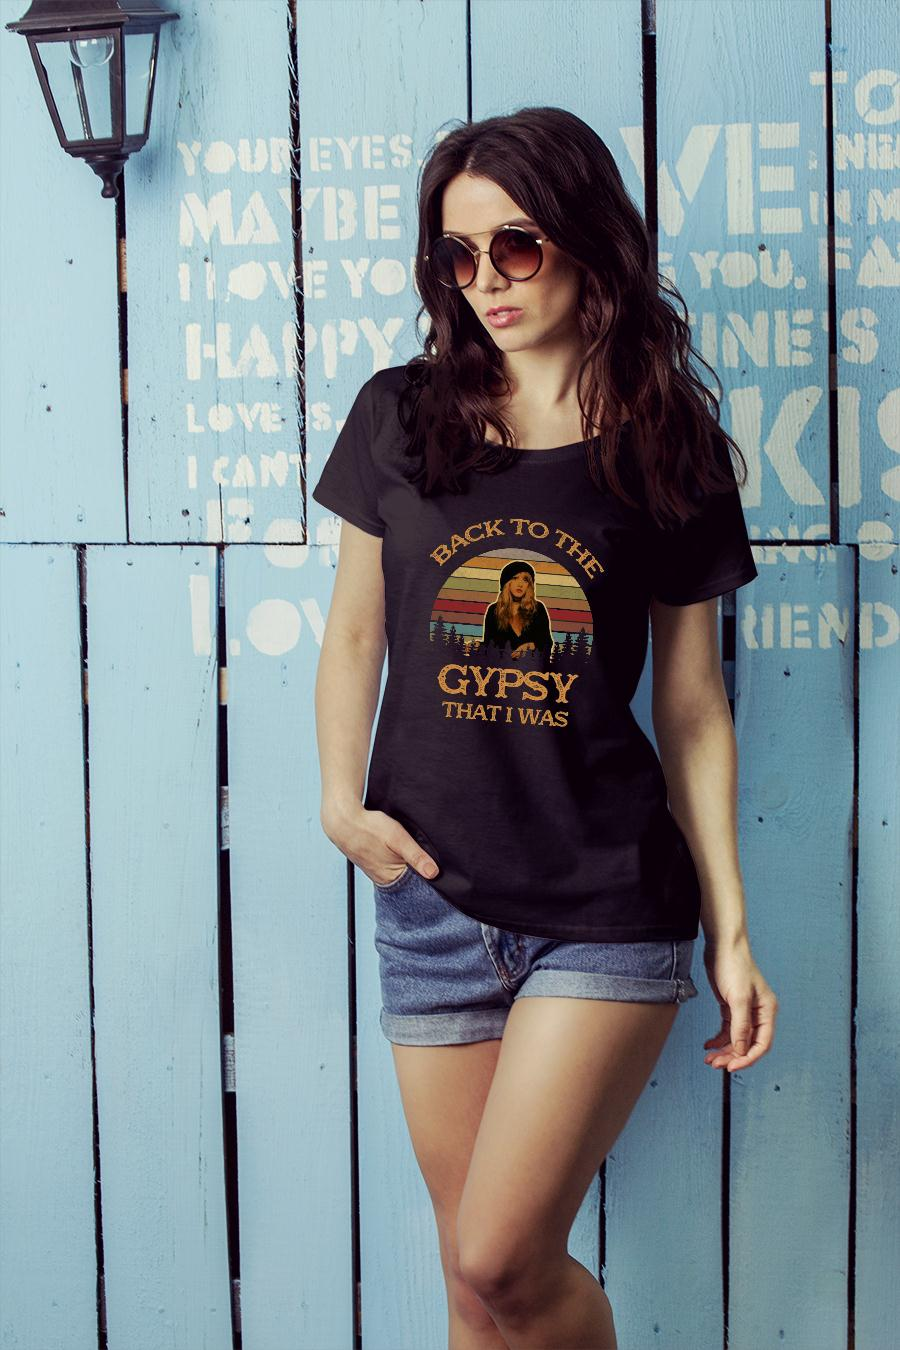 Stevie Nicks – Back To The Gypsy That I Was Shirt ladies tee official